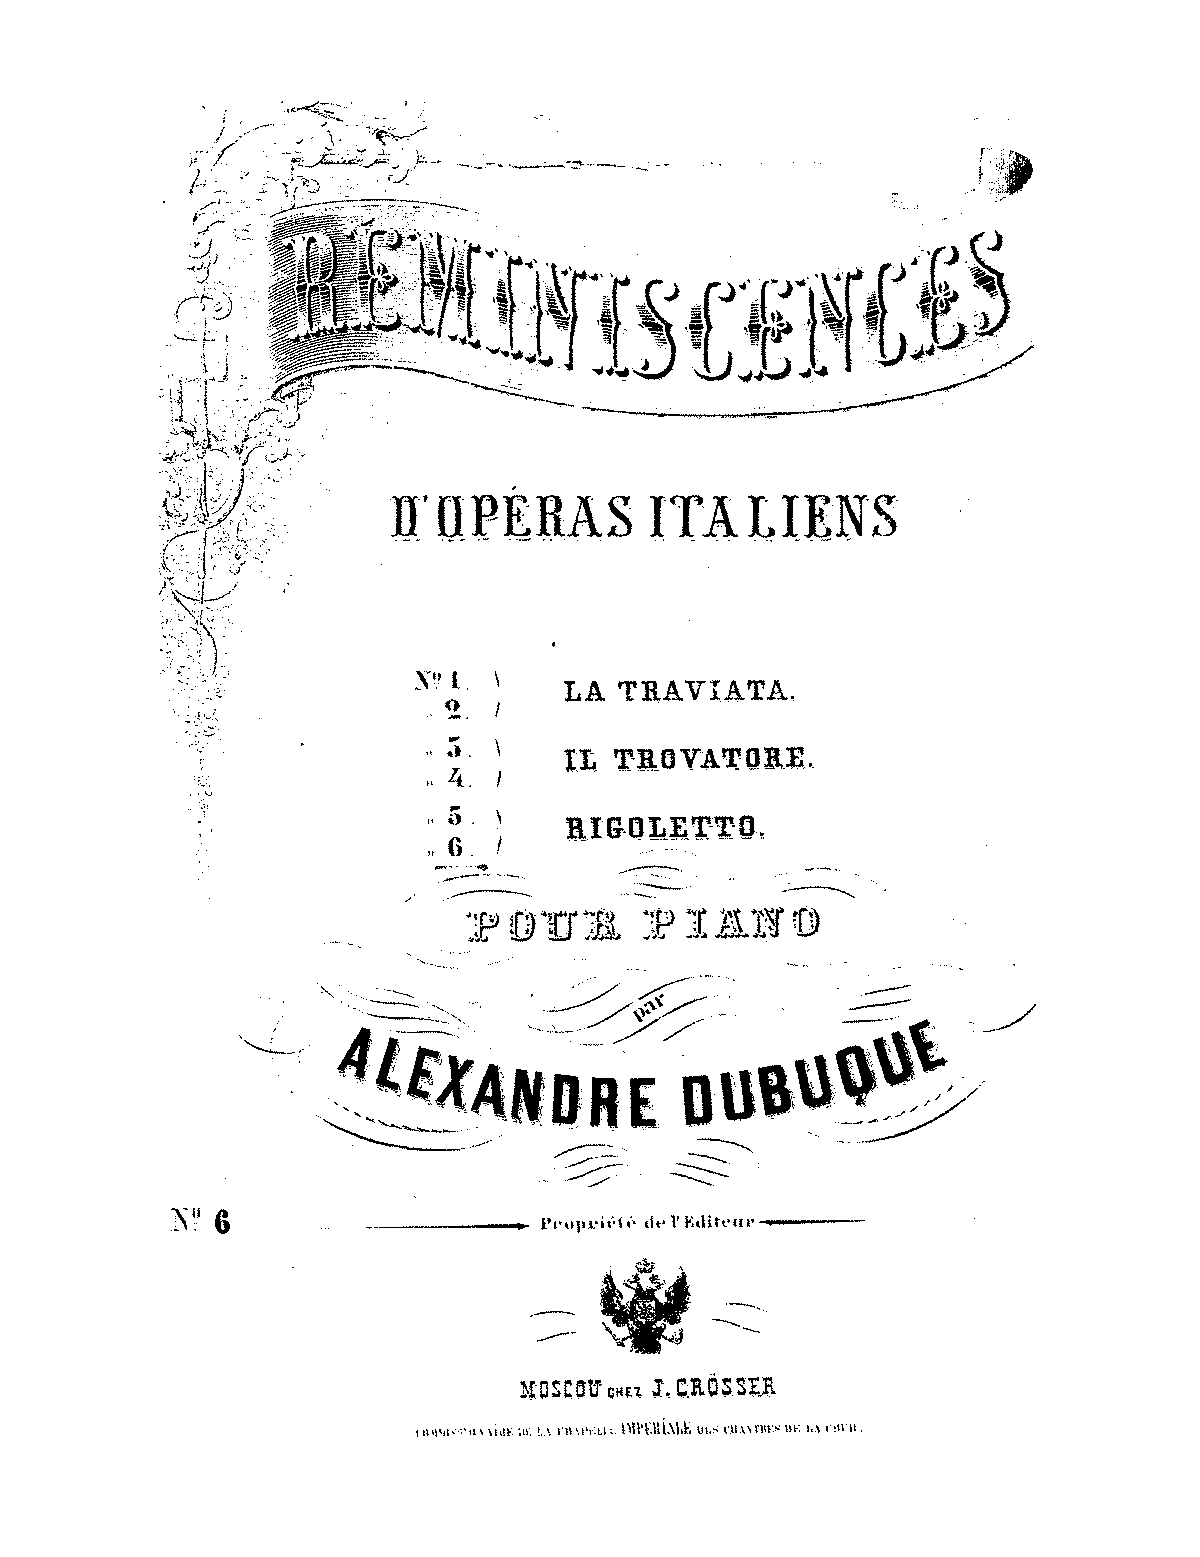 PMLP214904-Dubuque - Reminiscences d'operas italiens - Rigoletto.pdf